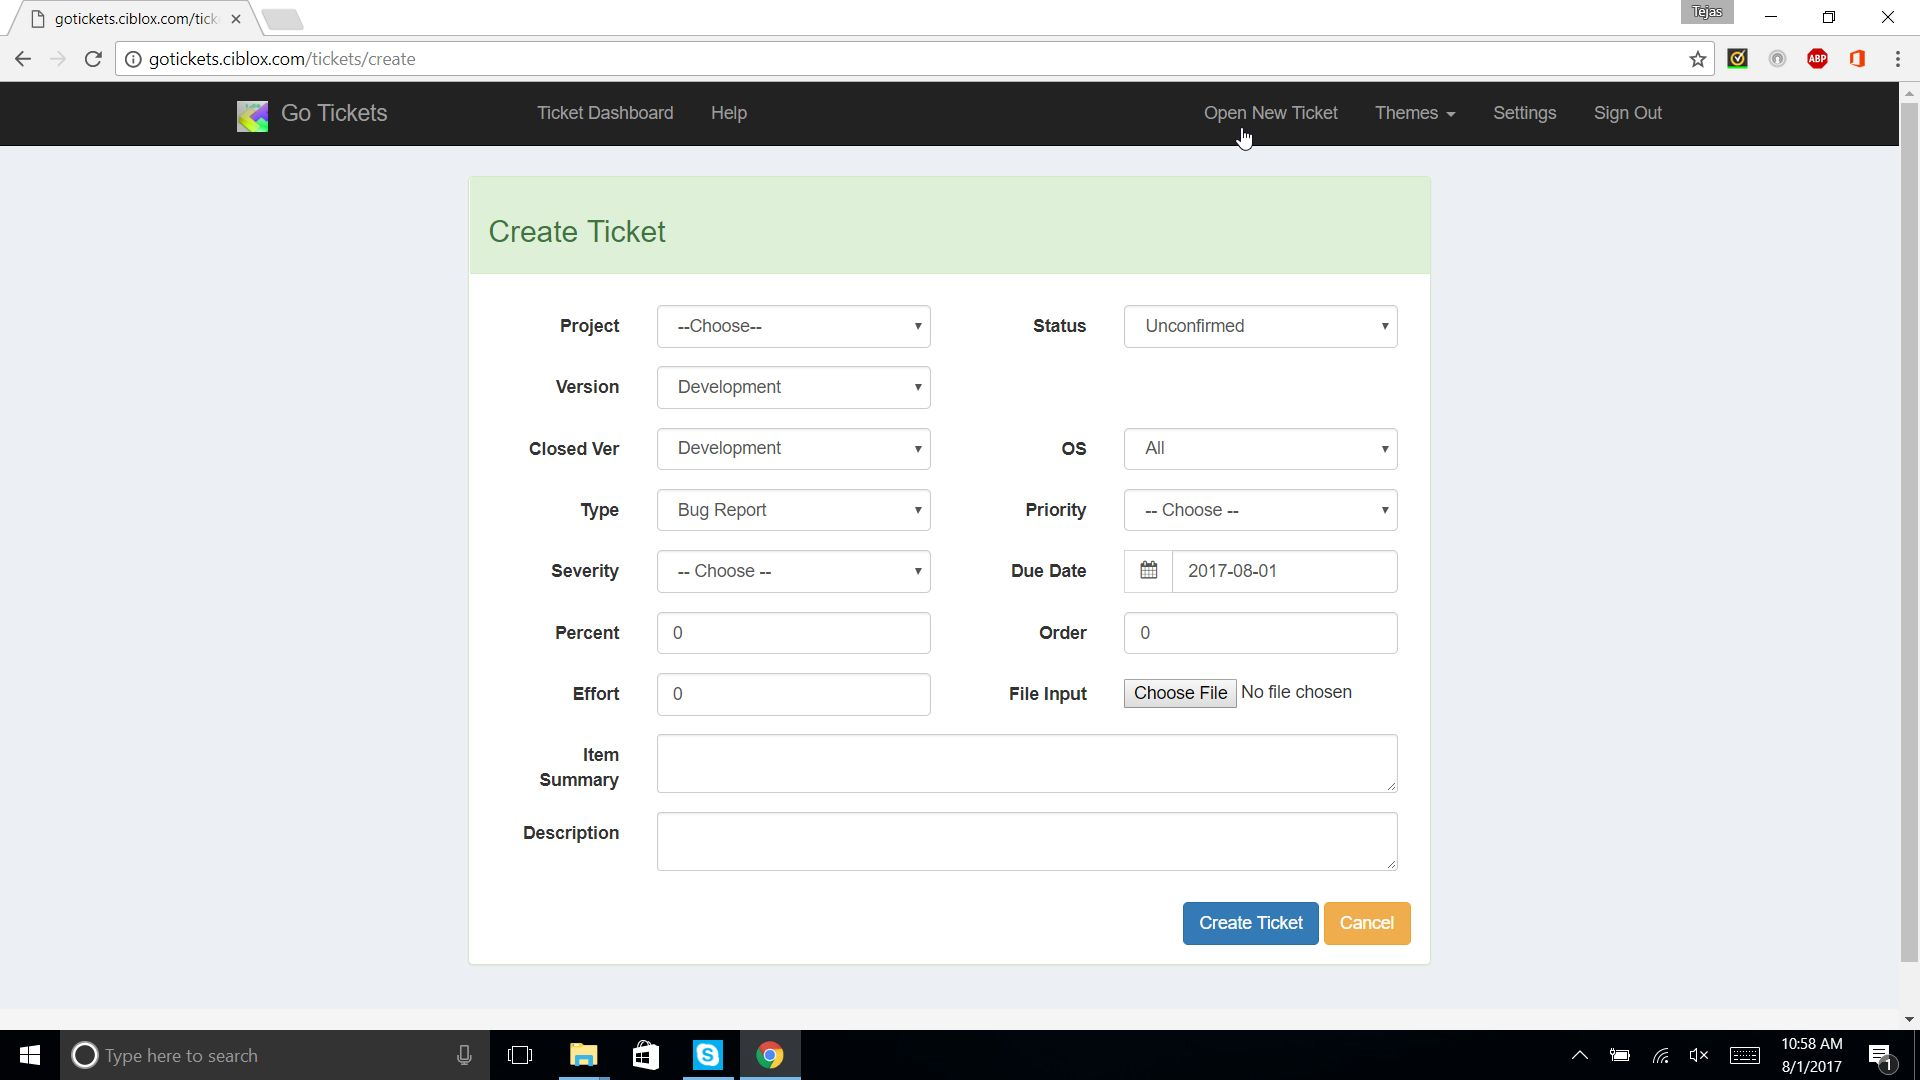 Go Tickets - Ticket Management System Screenshot 3